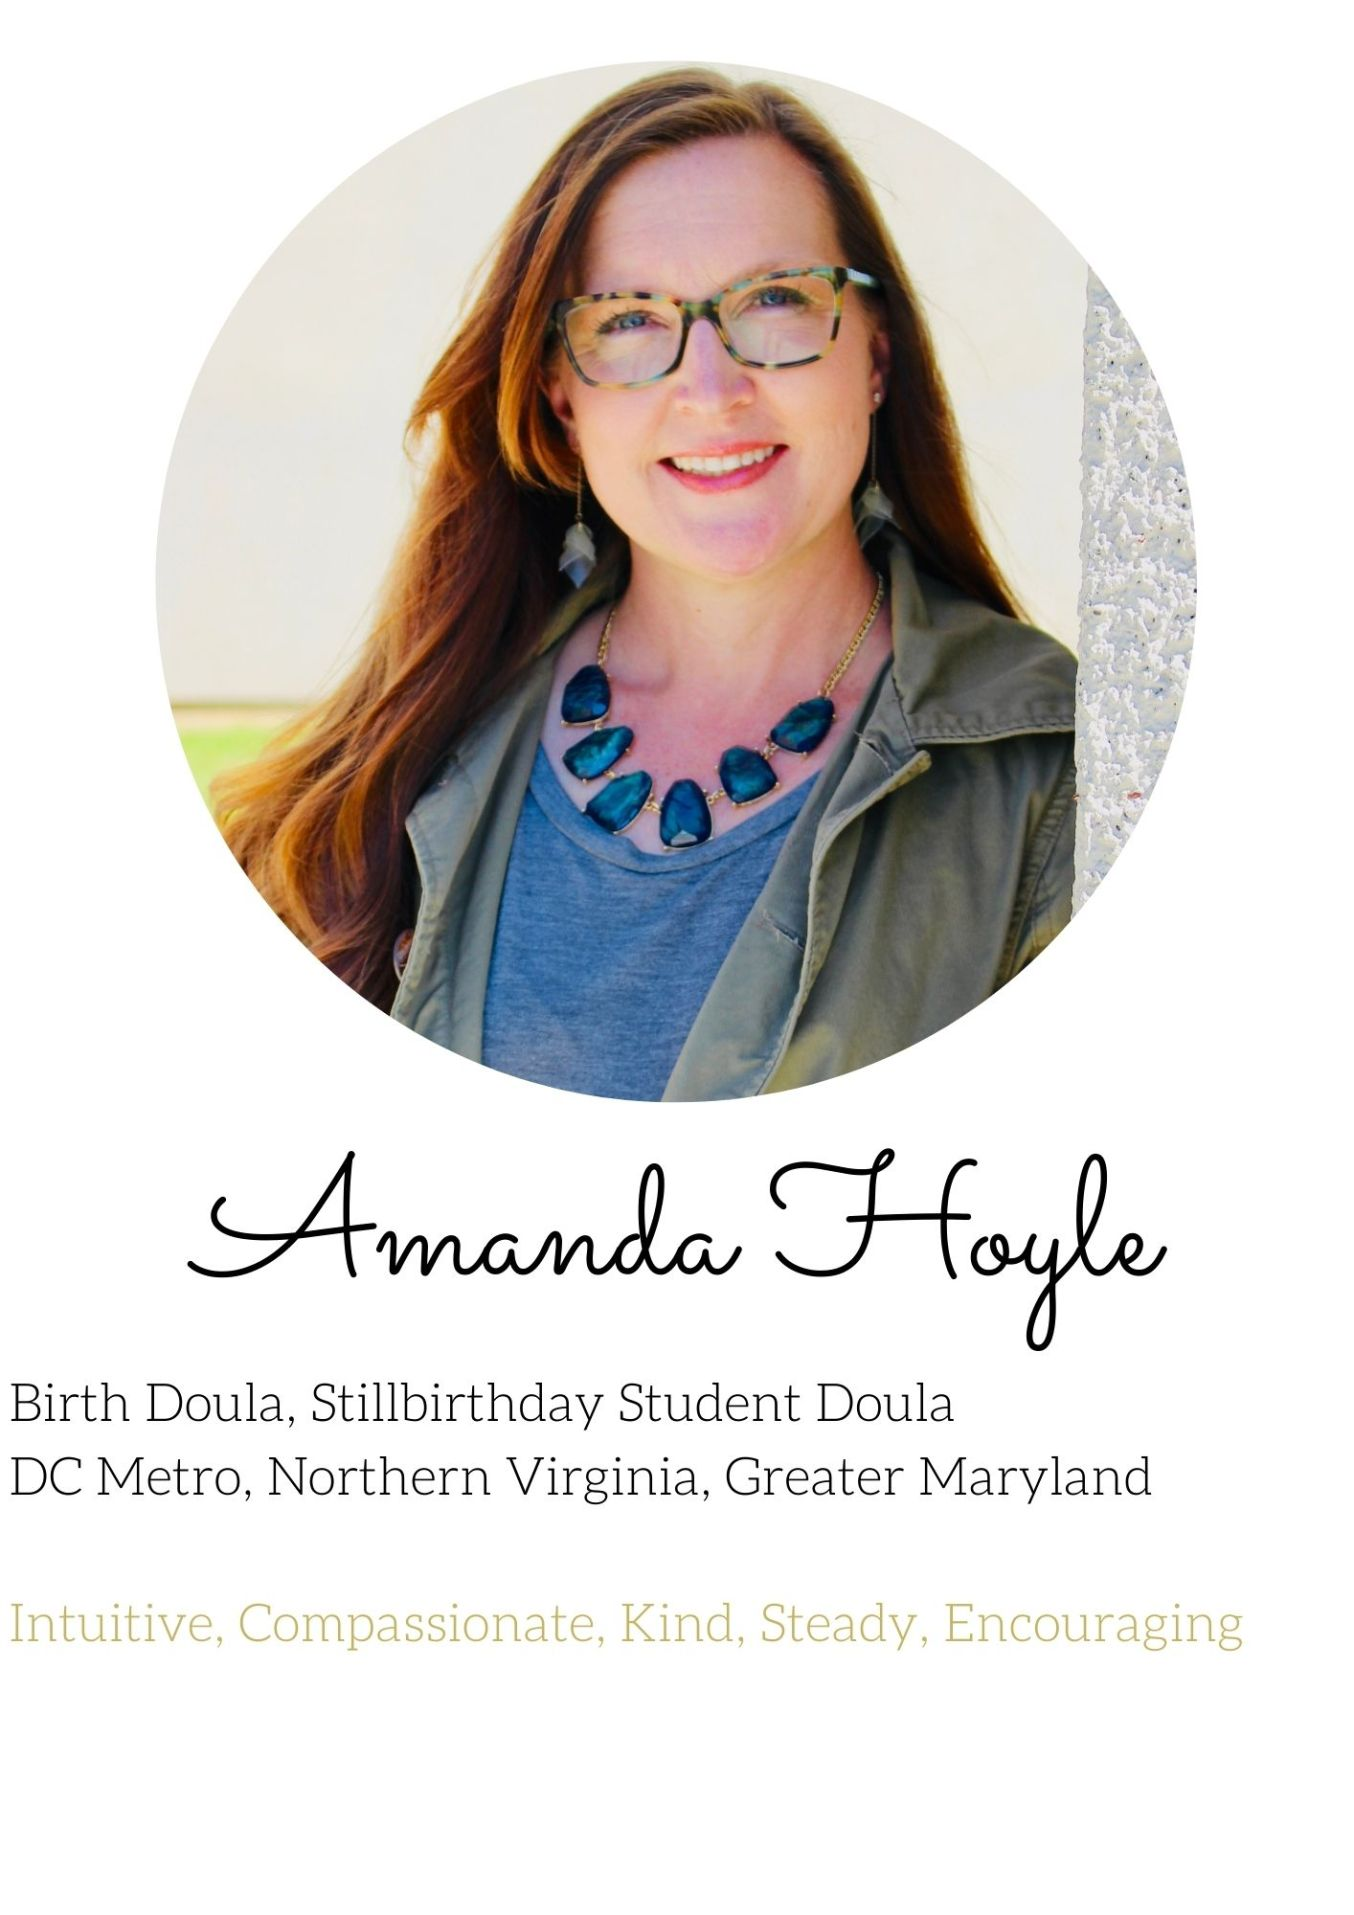 Amanda Hoyle Birth Doula, Stillbirthday Student Doula  DC Metro, Northern Virginia, Greater Maryland   Intuitive, Compassionate, Kind, Steady, Encouraging